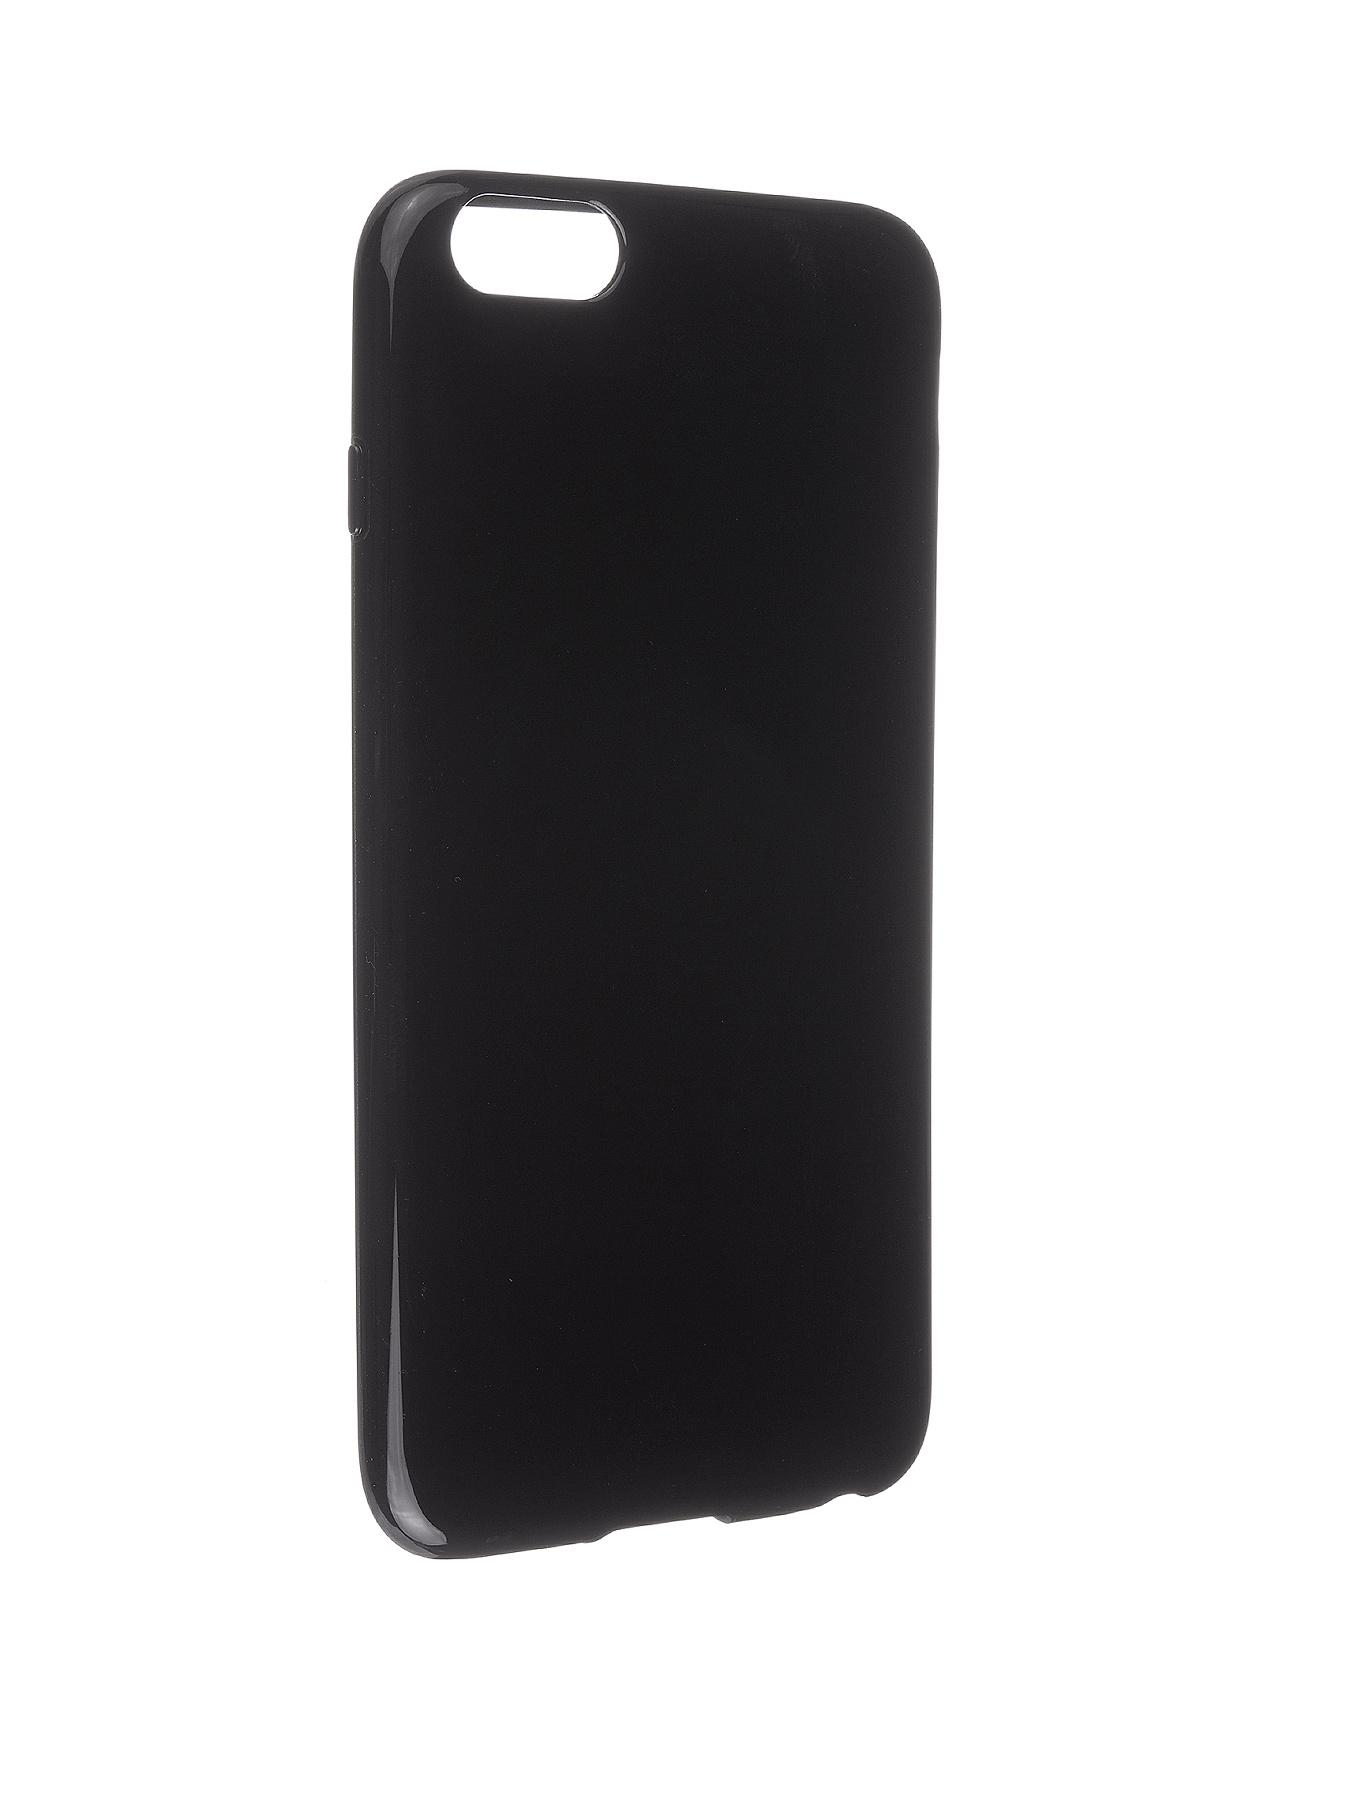 Case It iPhone 6 Plus Flexi Case - Black, Black